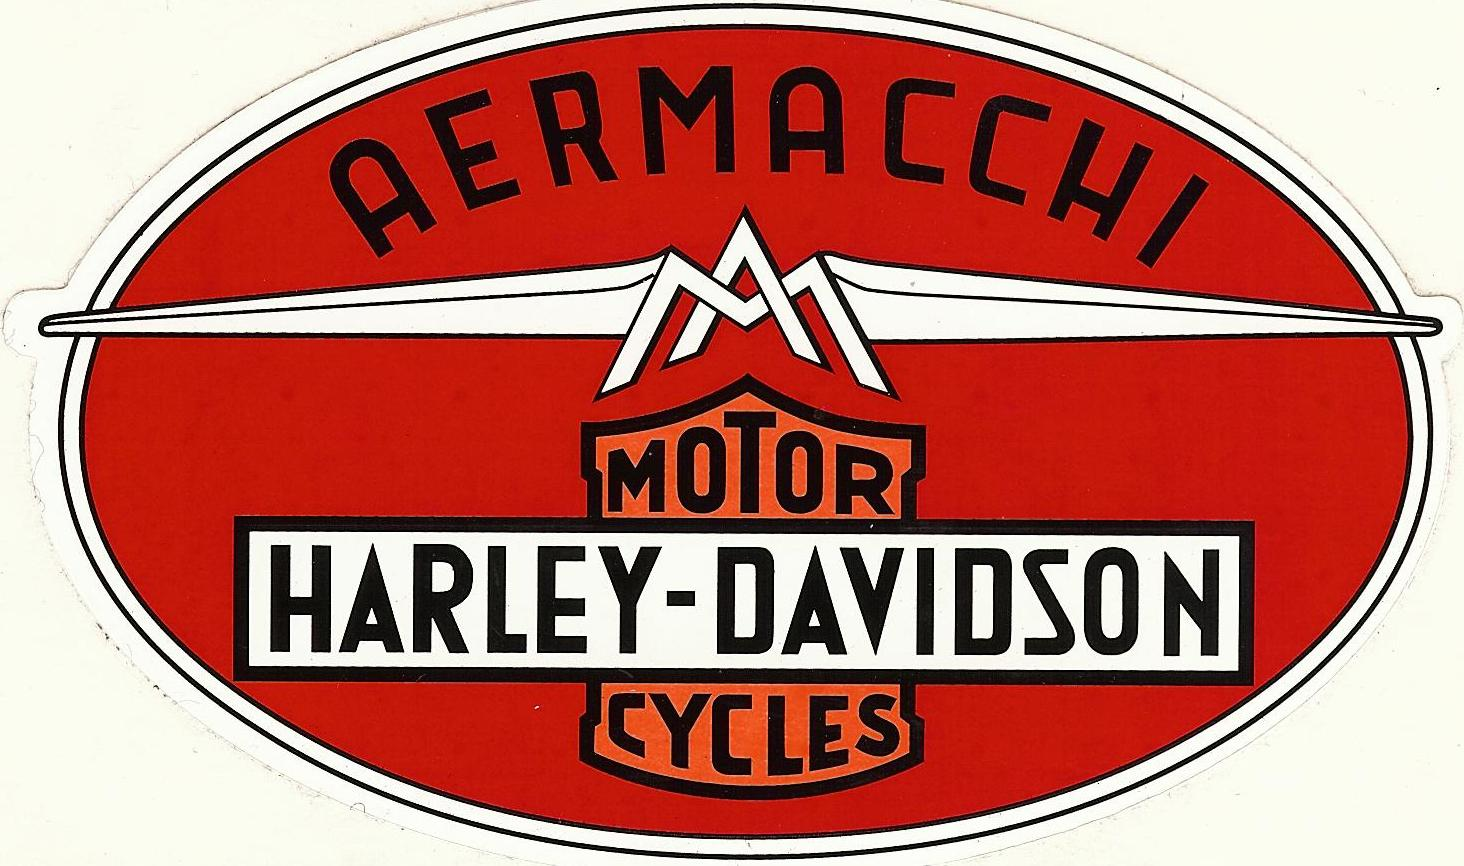 Aermacchi Logo Wallpaper